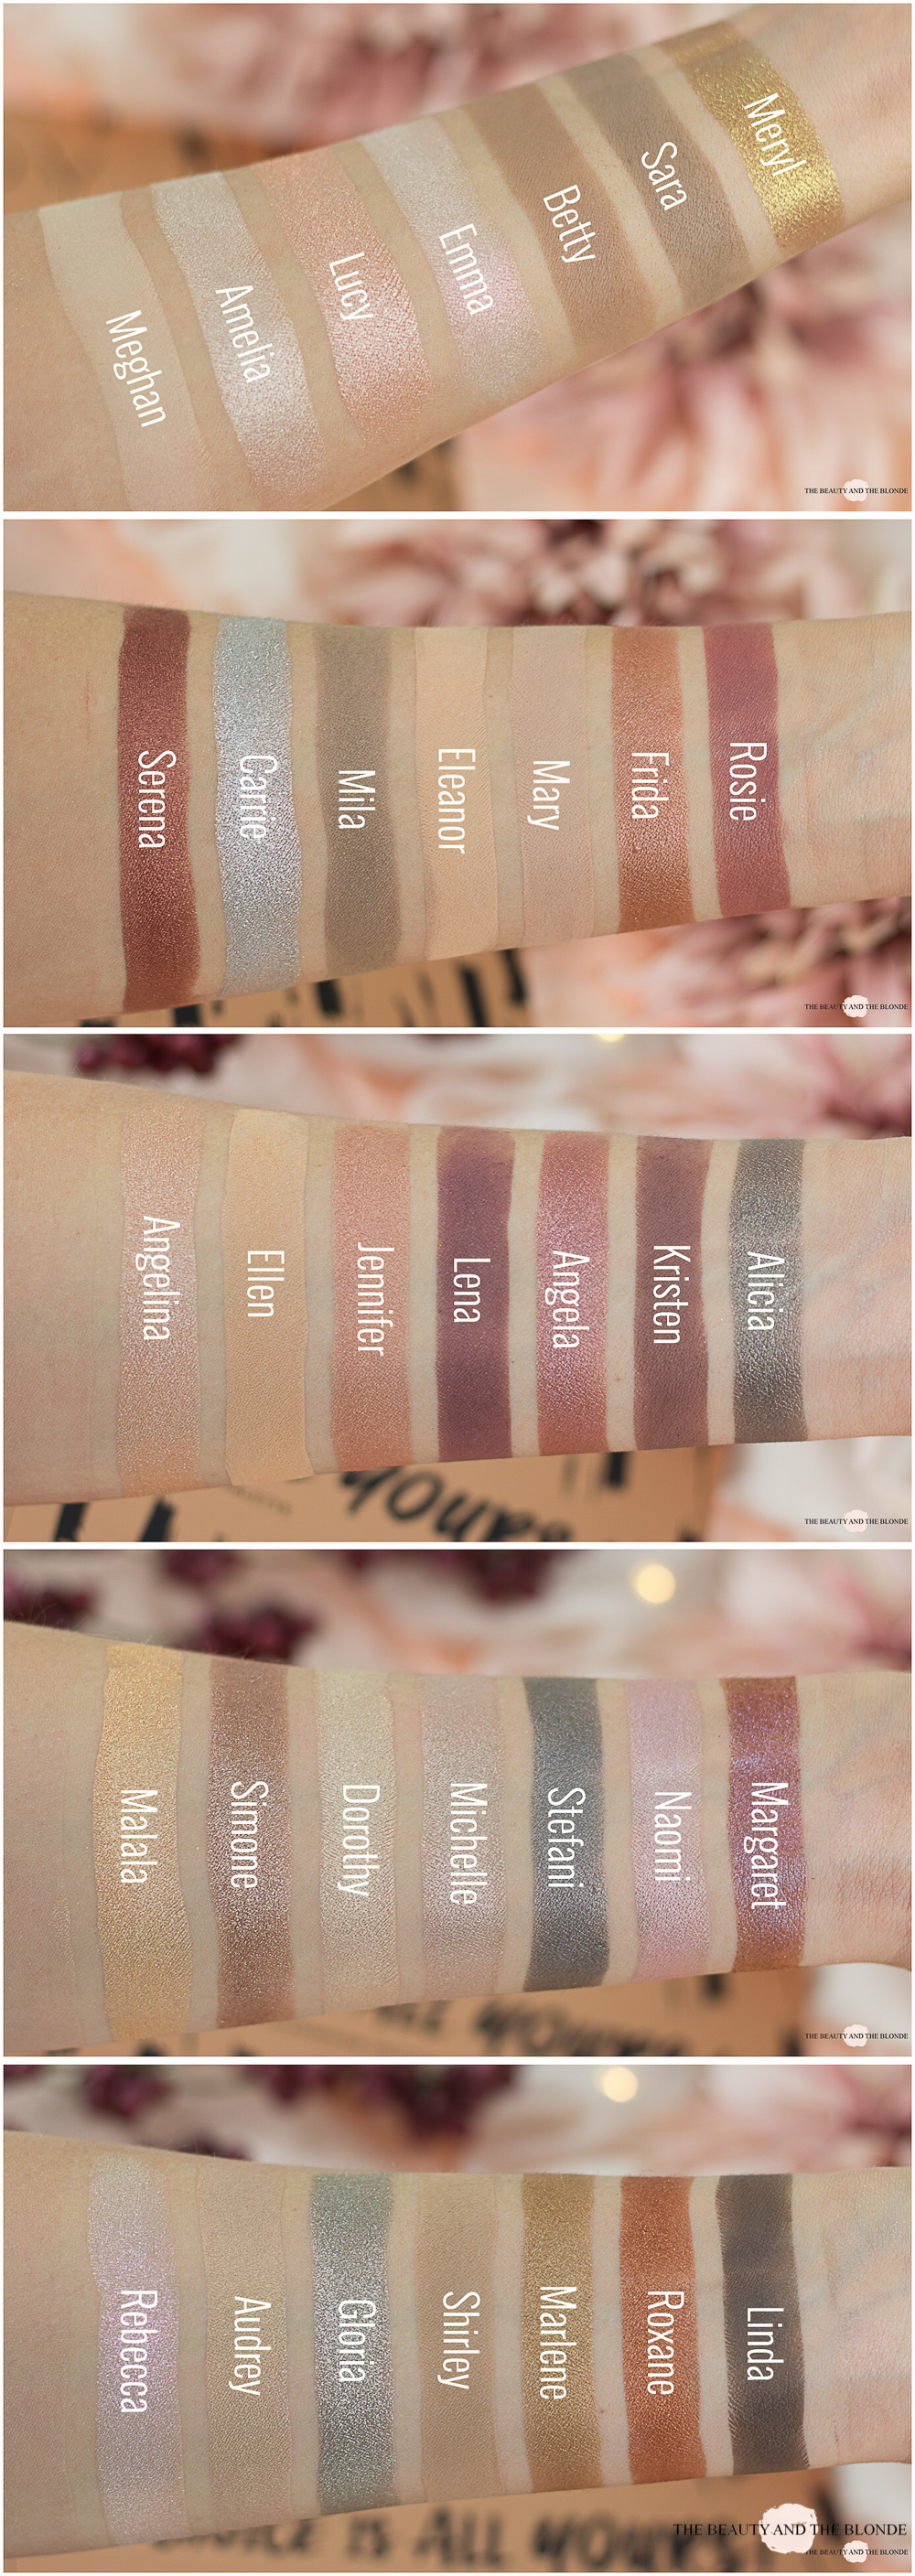 LOV The Choice Is All Yours Palette Swatches